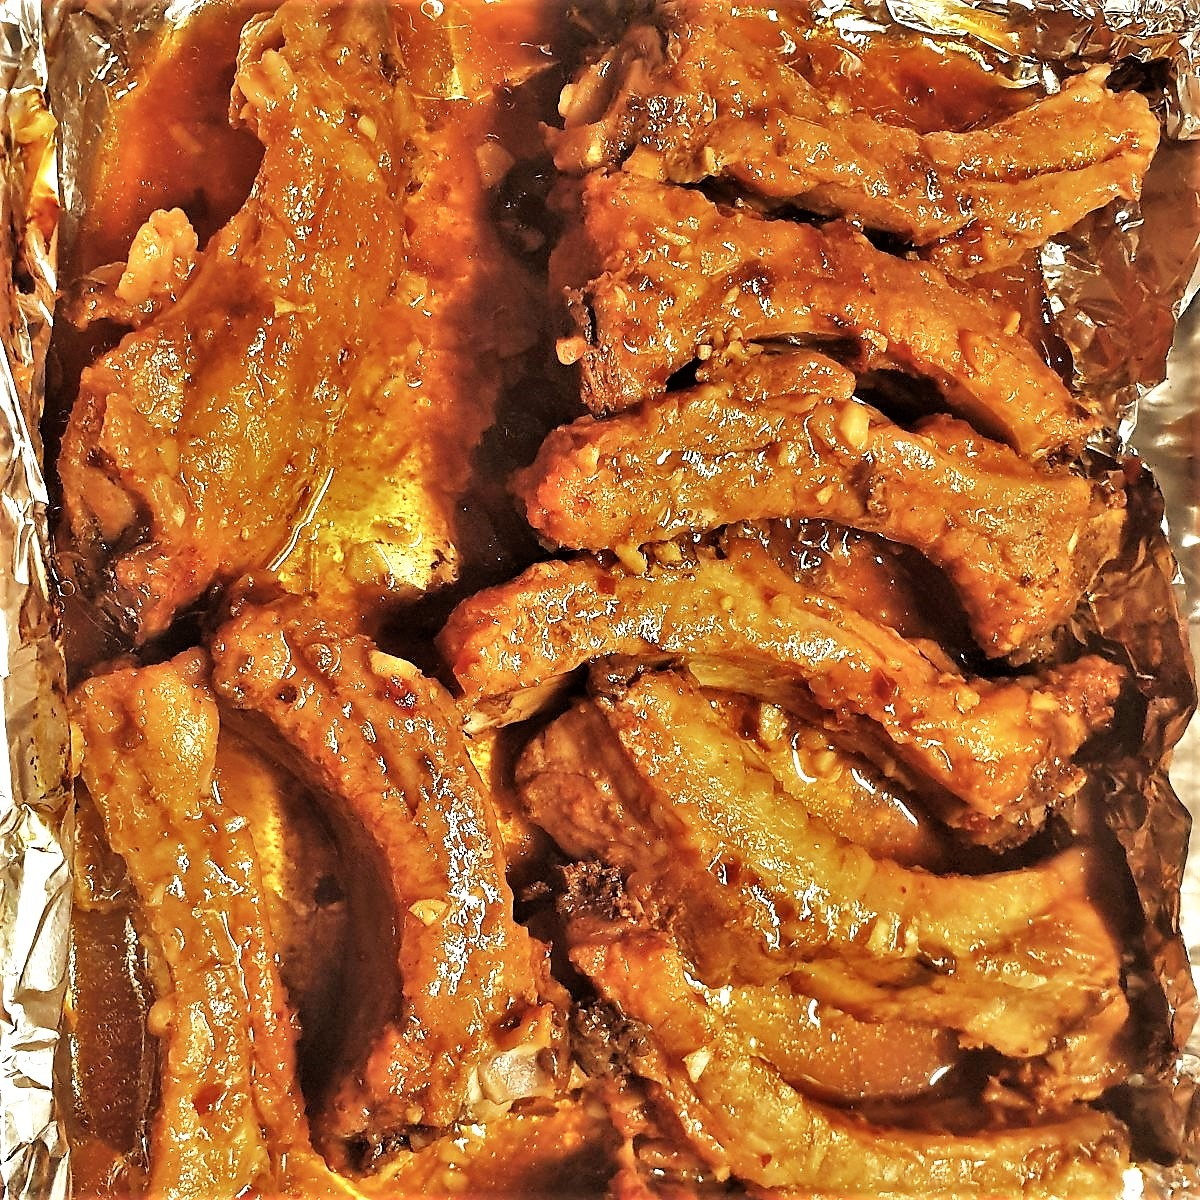 Cooked ribs layered in a baking dish.